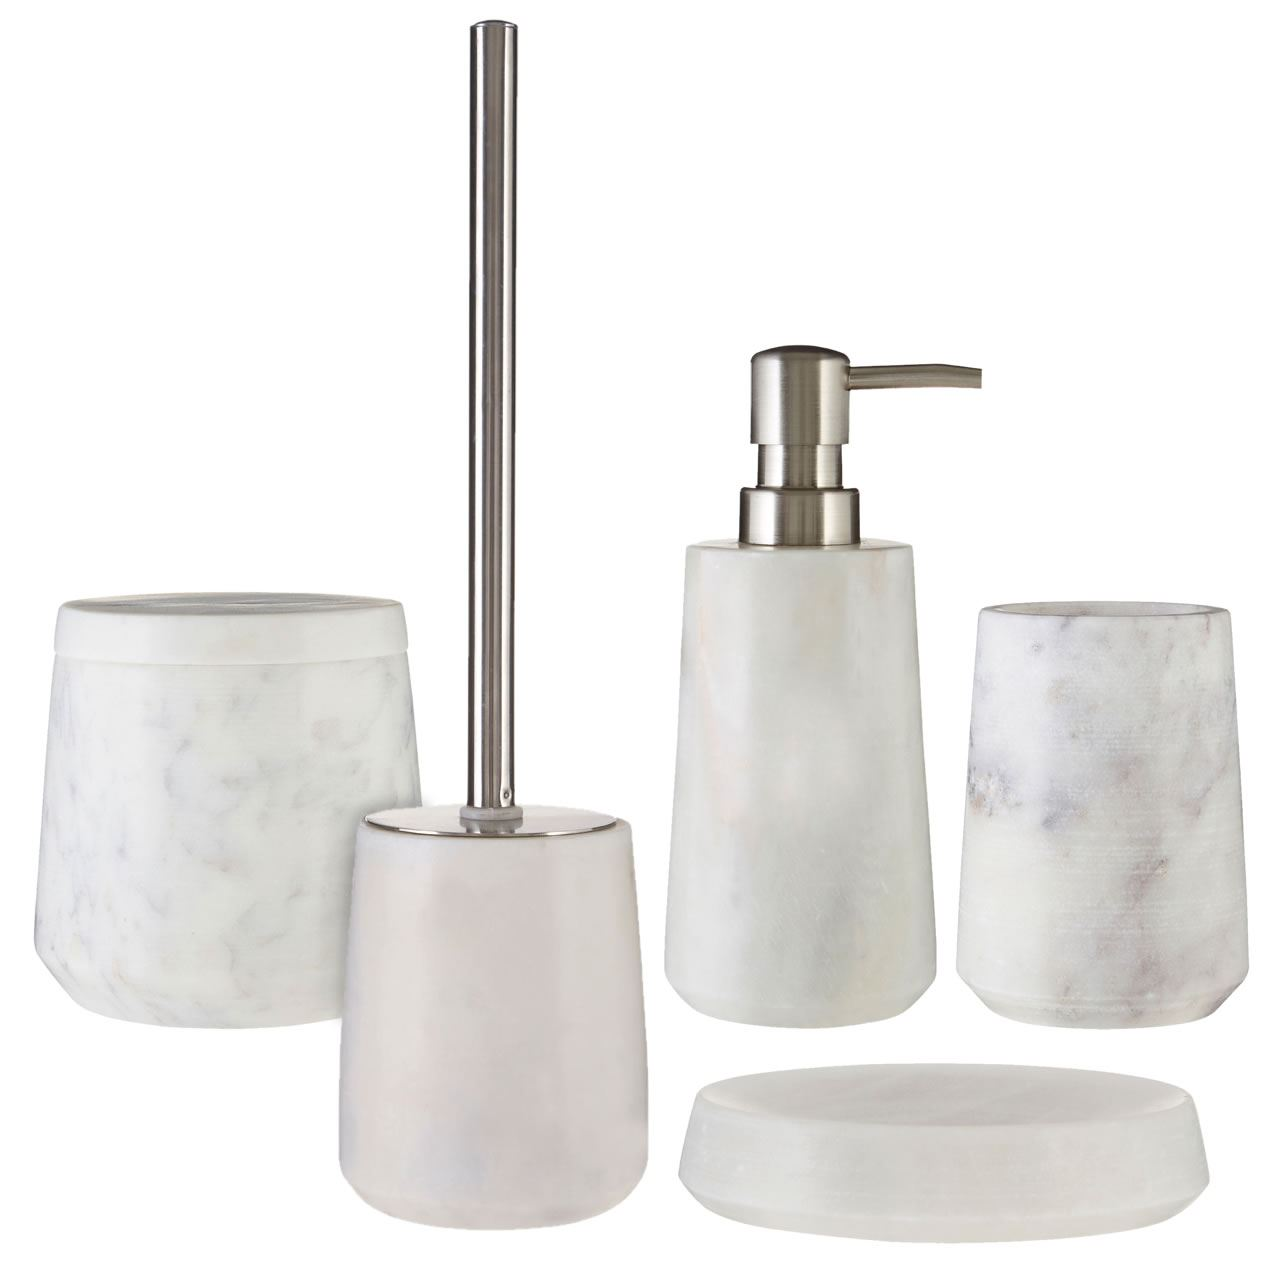 Bathroom Accessories Company 25 Best Ideas About The